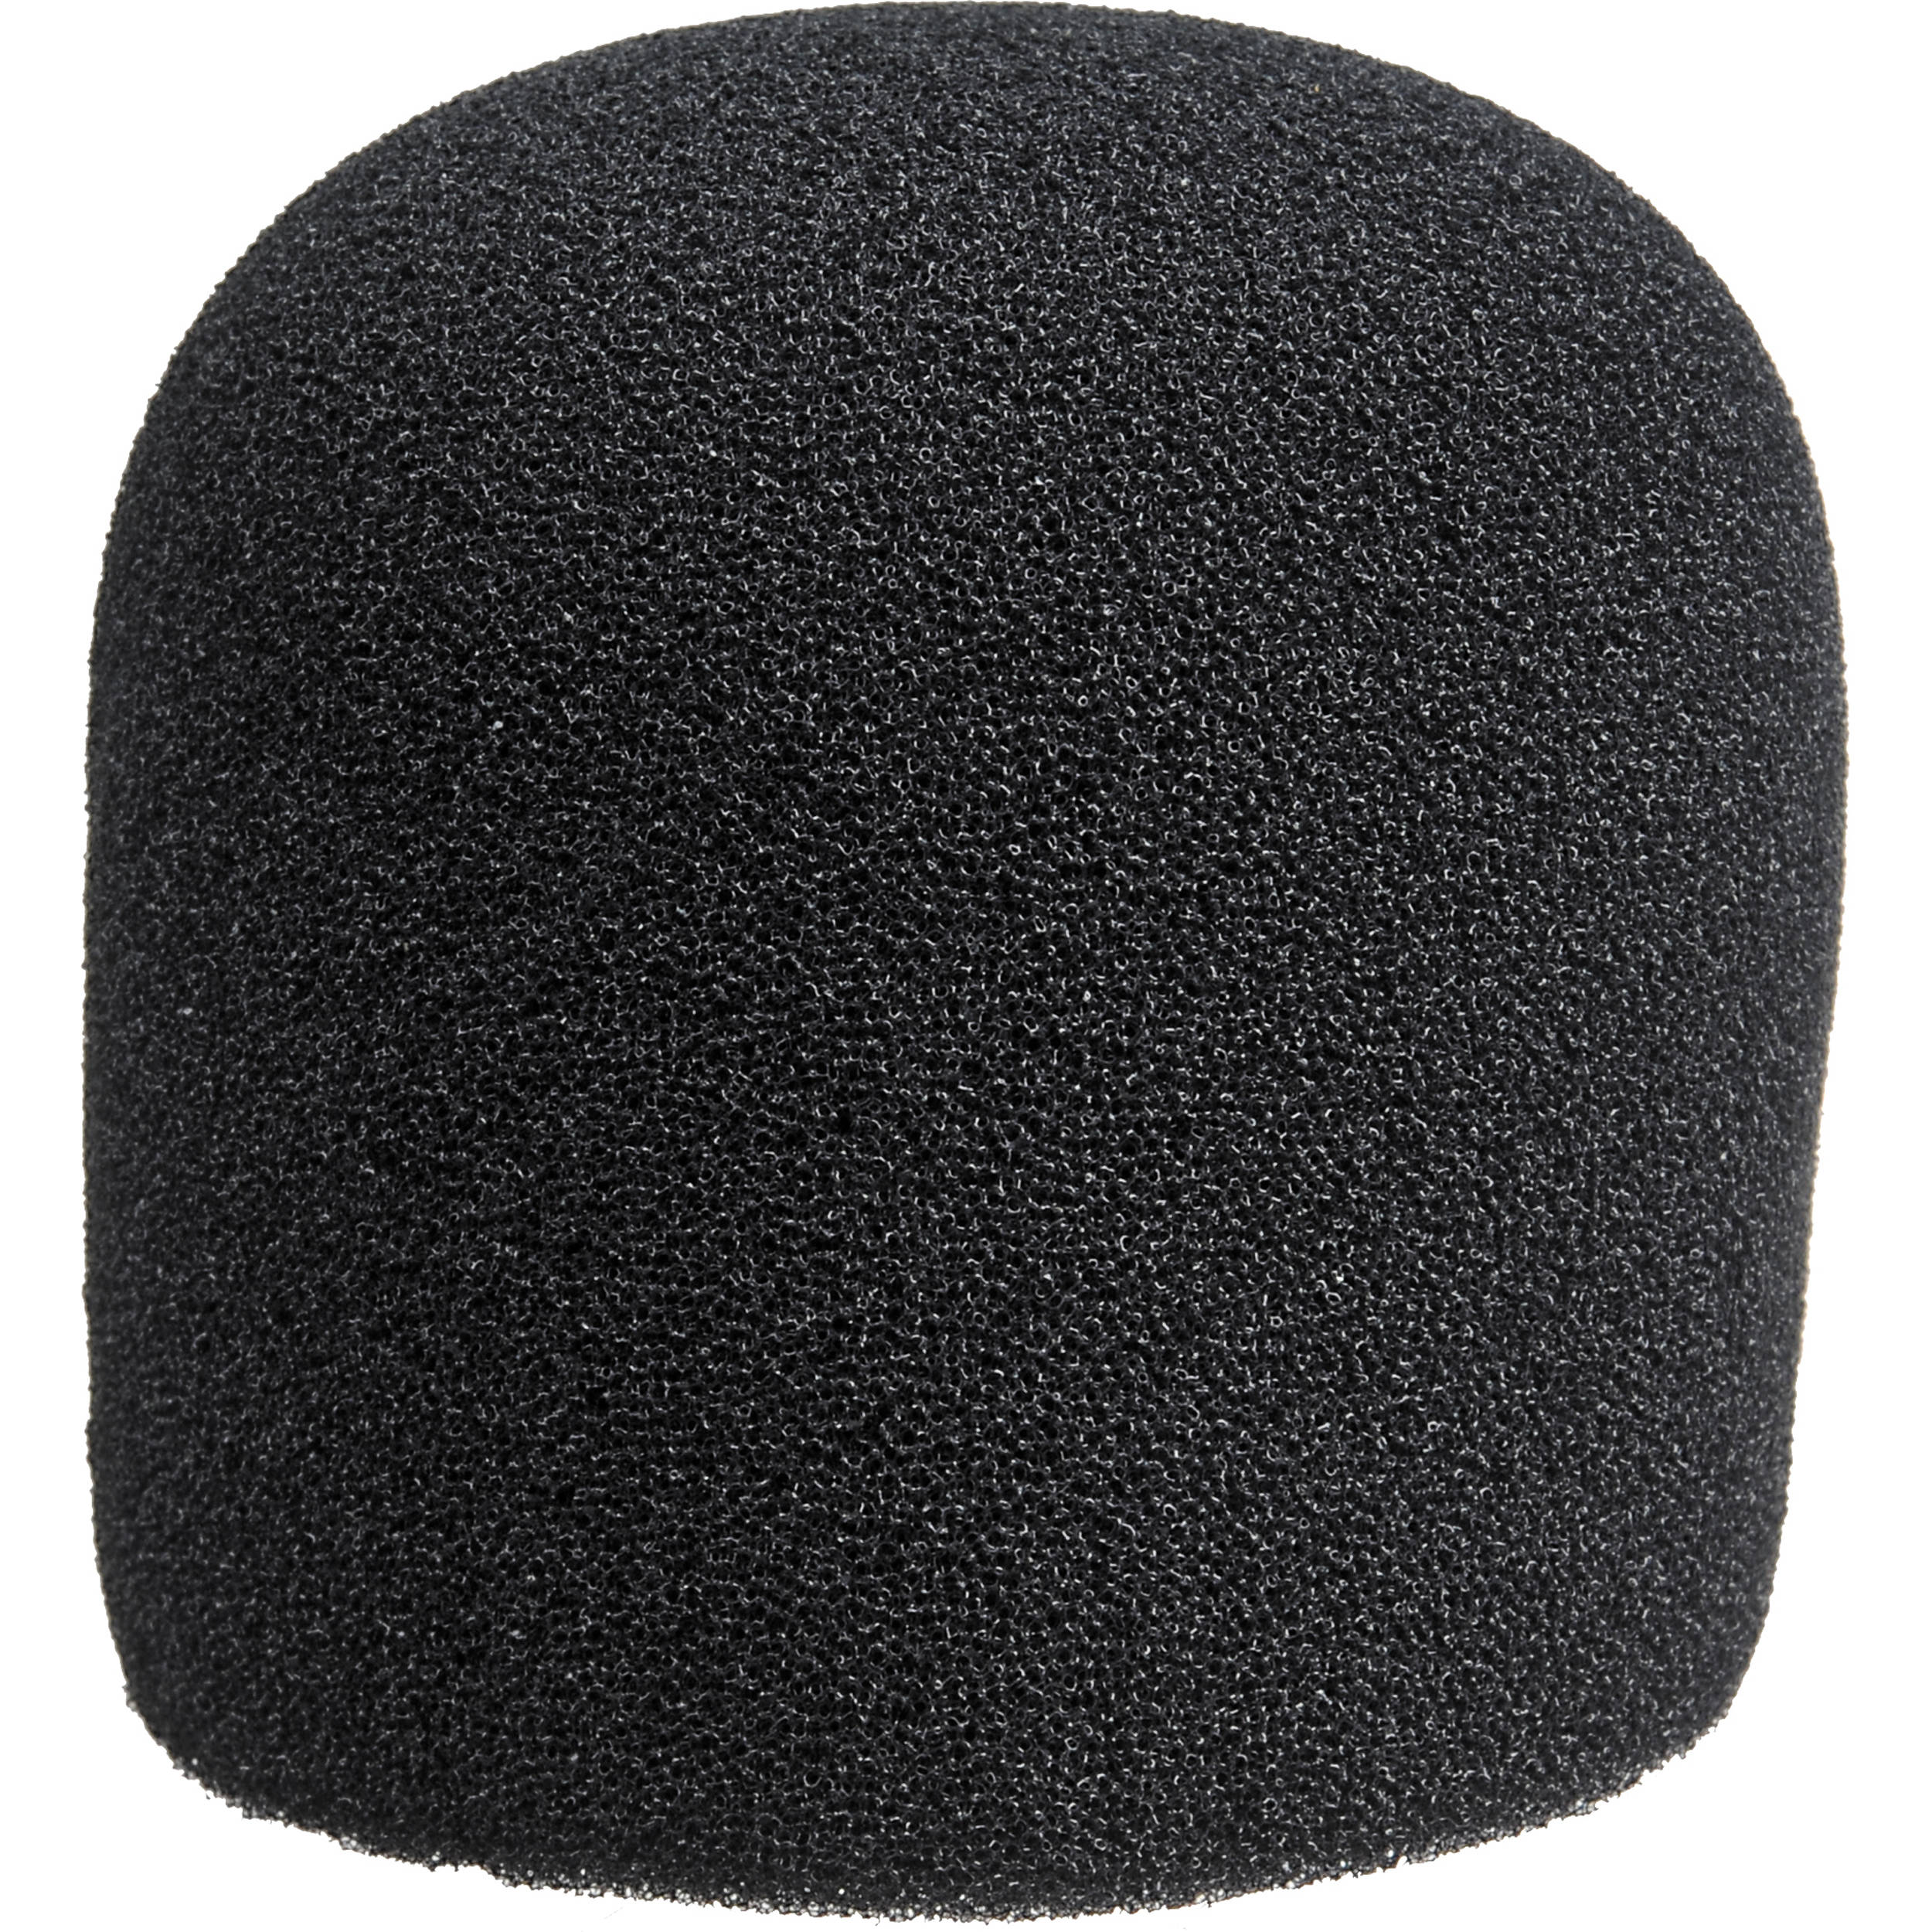 Admiral Policy Windscreen Zoom S Spo Replacement Foam Windscreen For